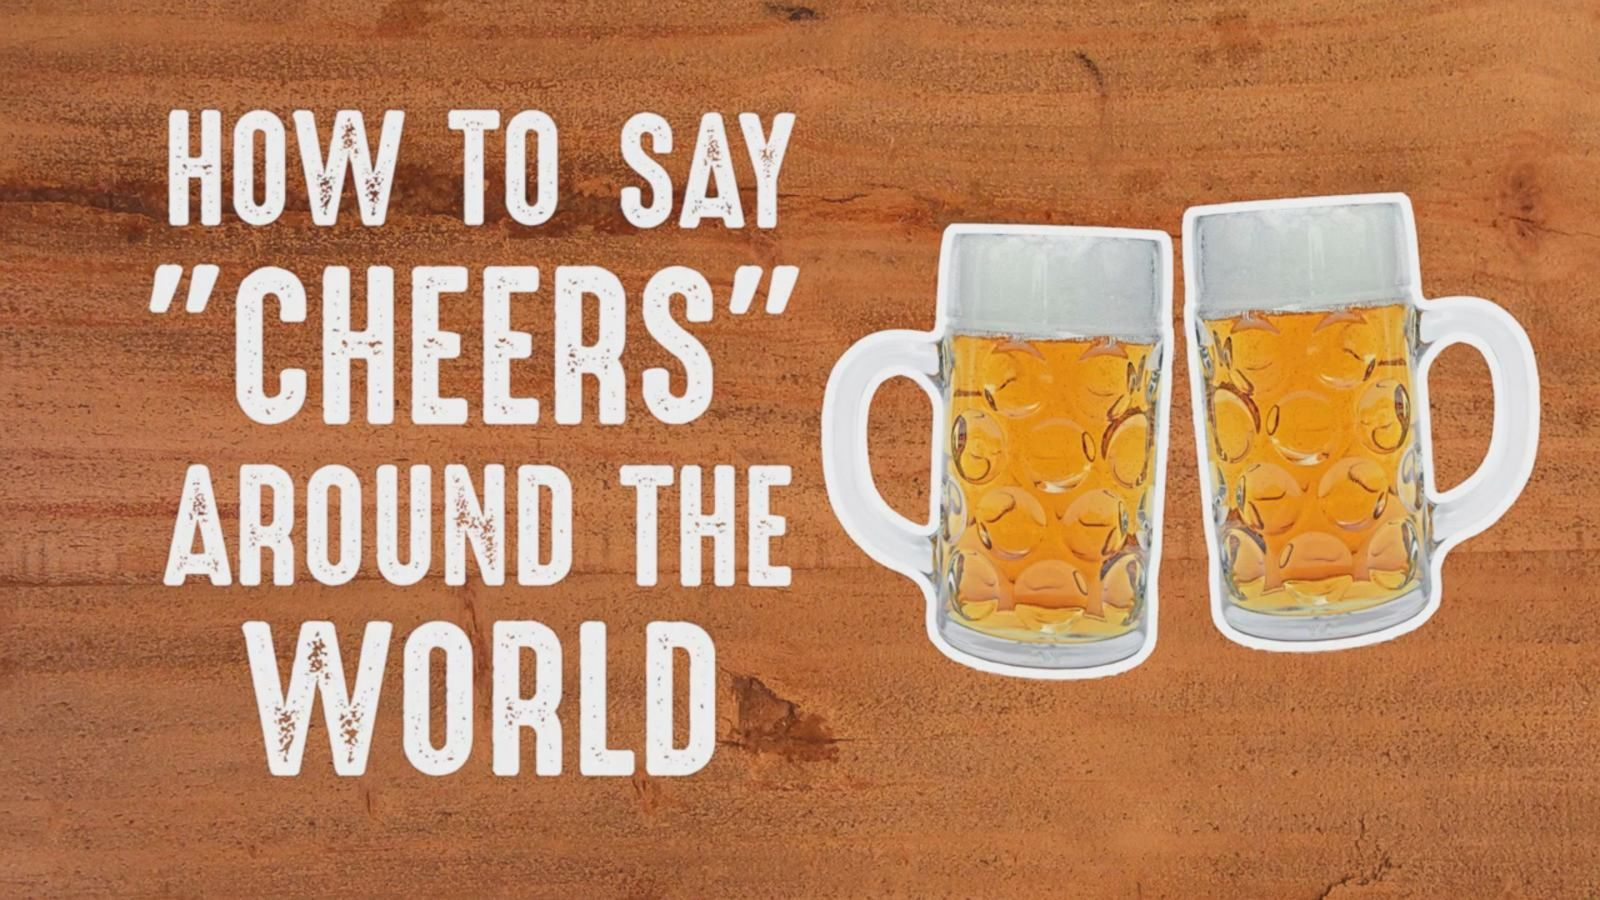 How Do You Say Good Morning In French Creole : How to say cheers around the world abc news